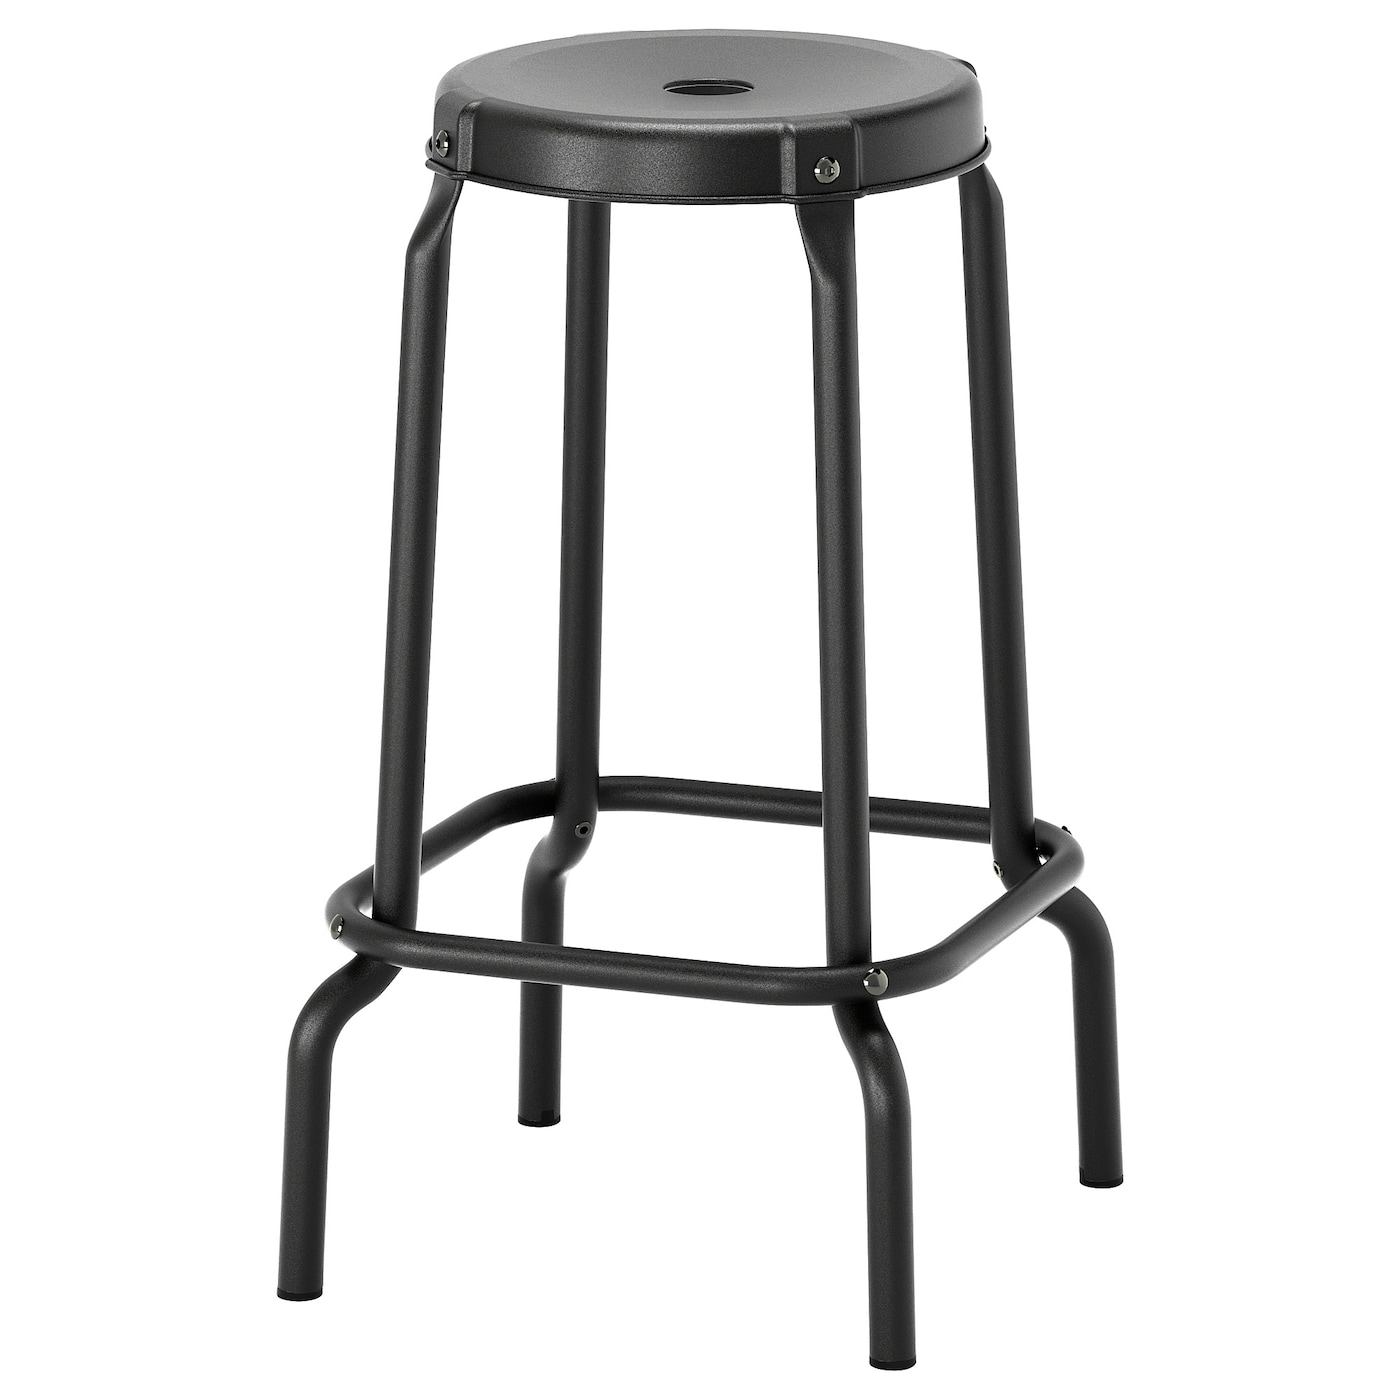 Awe Inspiring Bar Stool Raskog Black Gmtry Best Dining Table And Chair Ideas Images Gmtryco